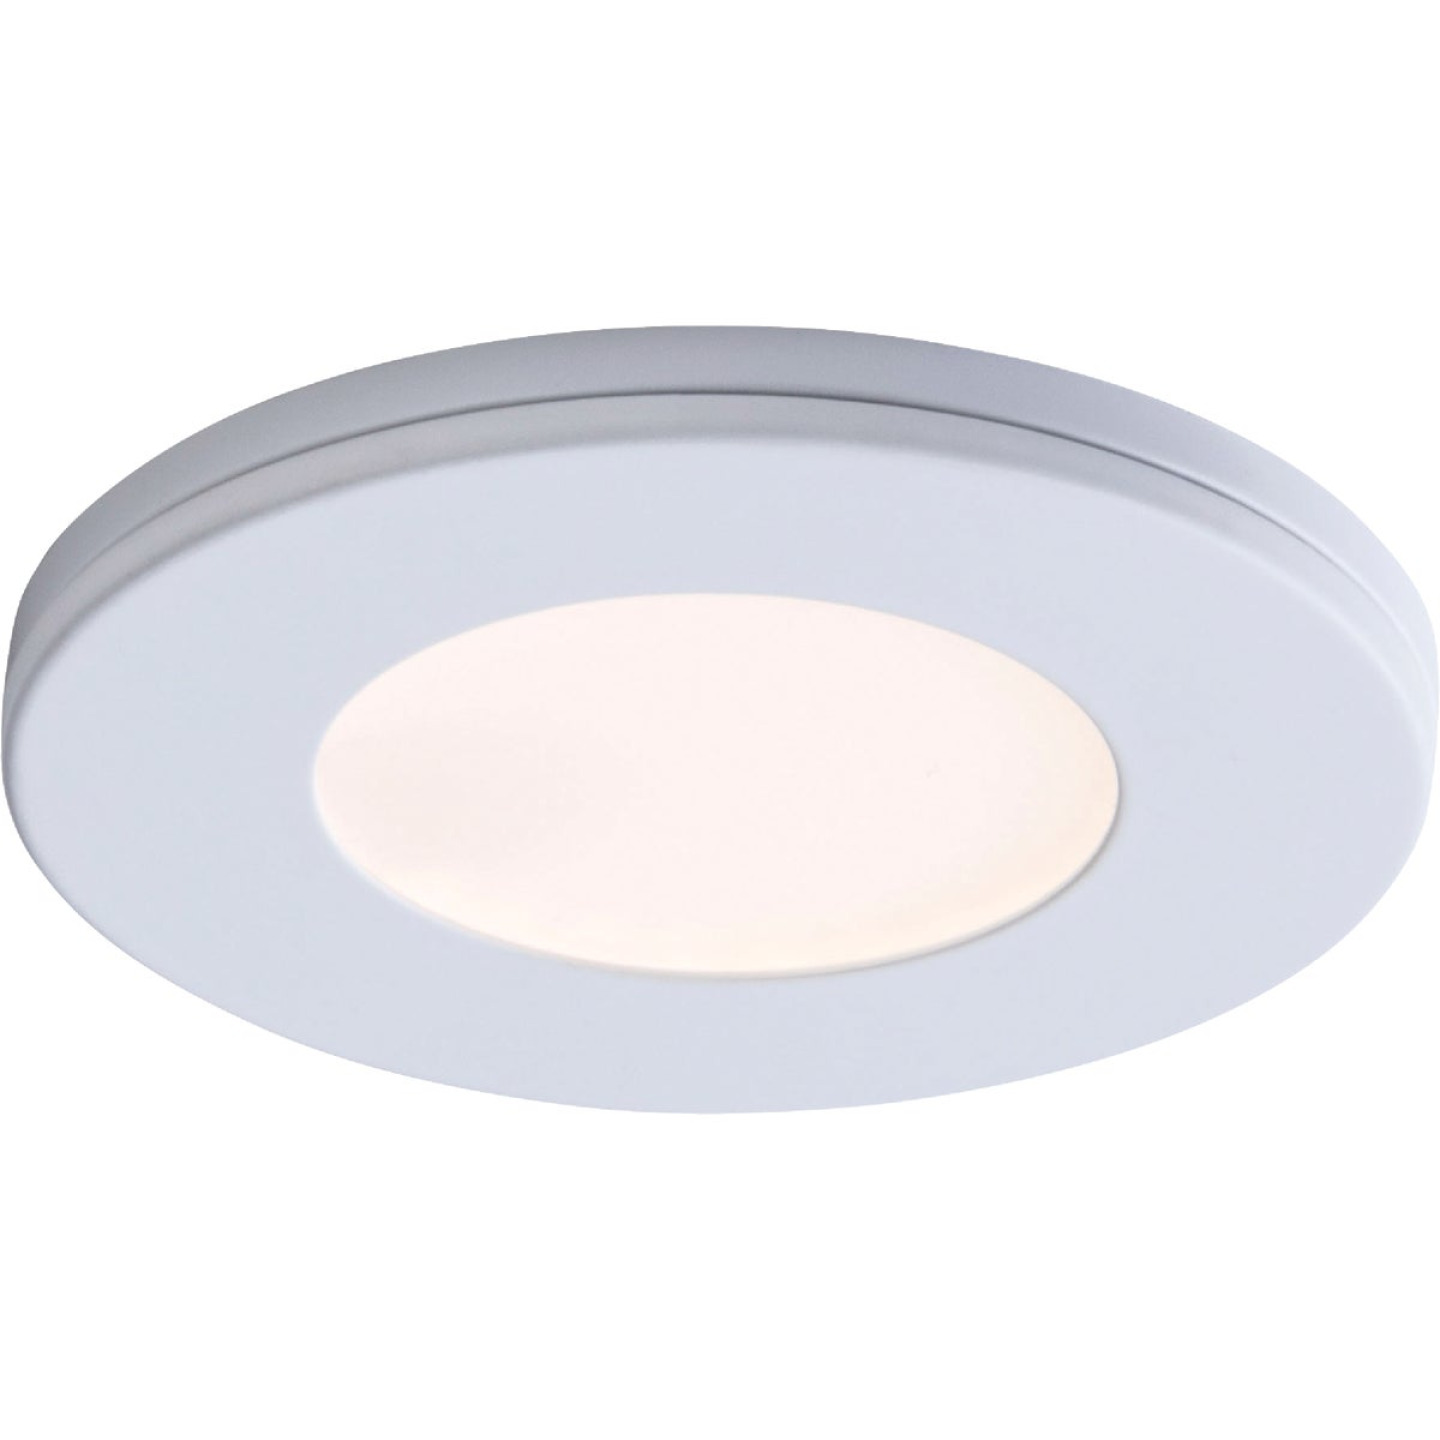 Liteline 3 In. Dia. X 1/4 In. Thick Plug-In White LED Under Cabinet Puck Light Image 1